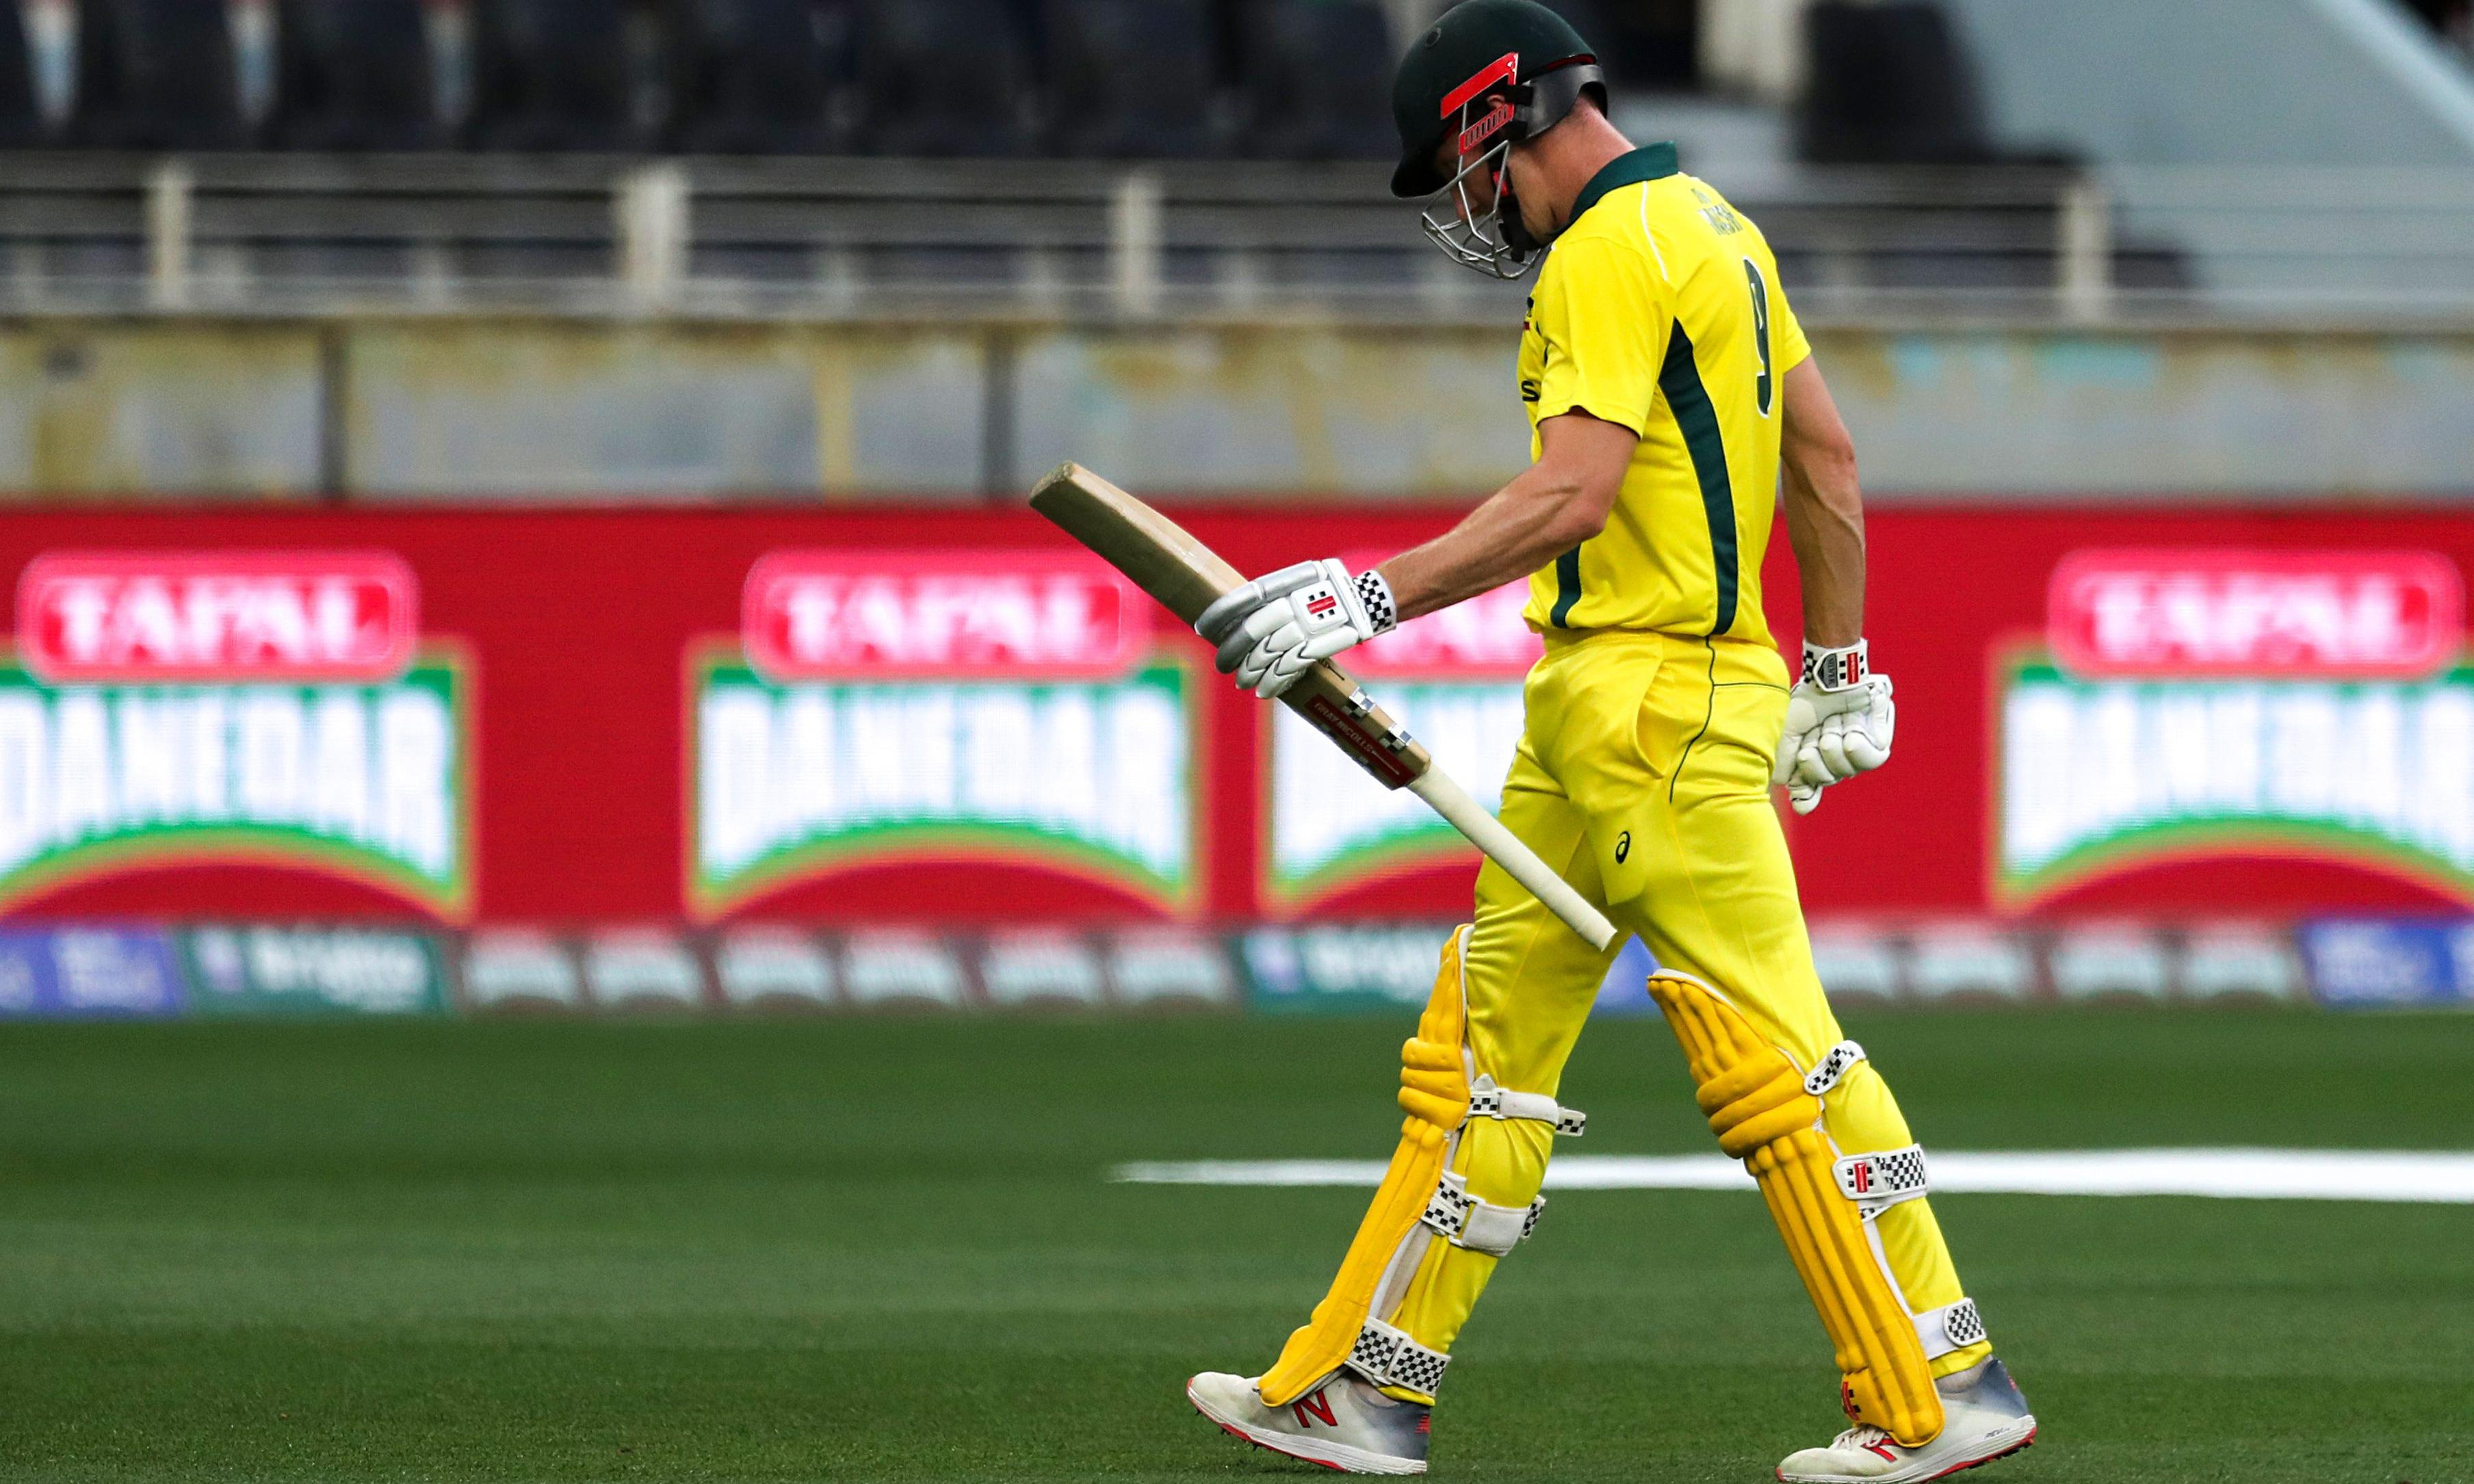 The curious conservatism of Australia's World Cup squad selection